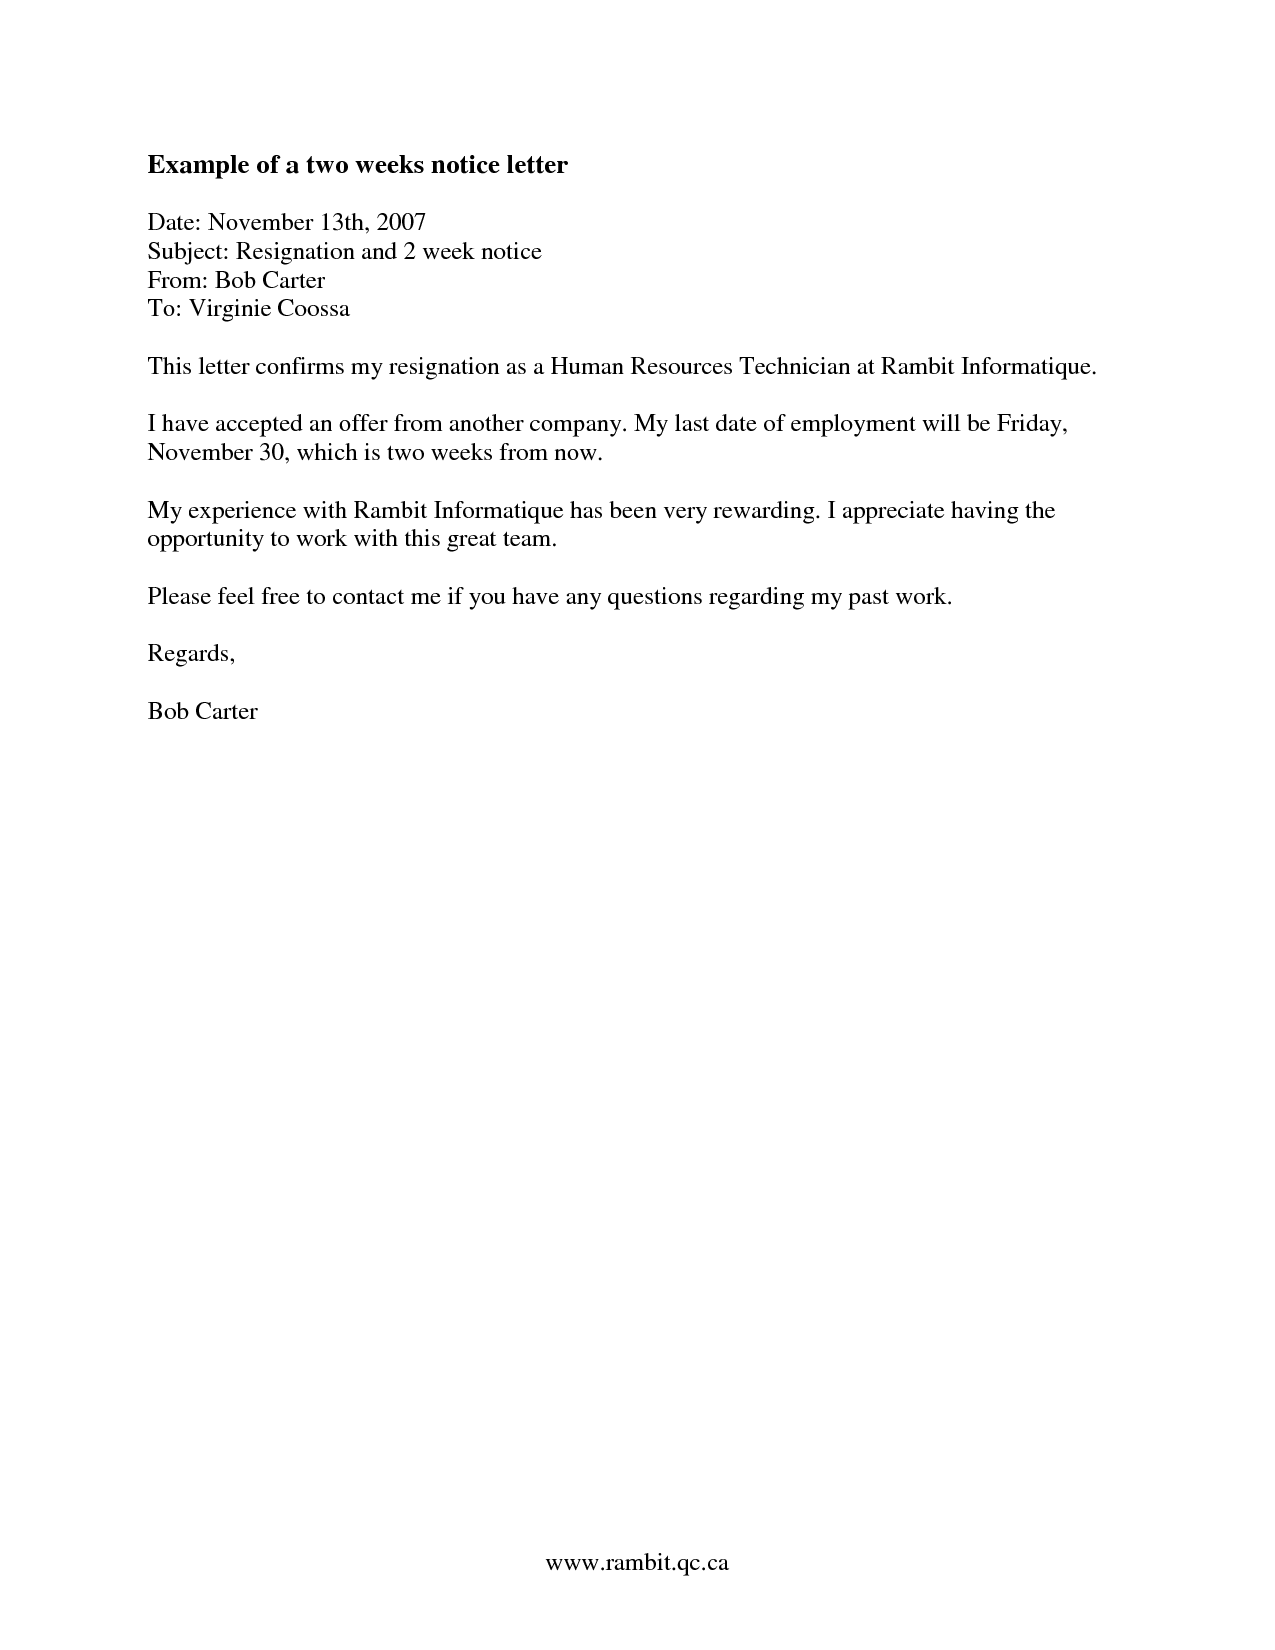 2 Weeks Notice Letter Resignation Letter Week Notice WordsWriting A Letter  Of Resignation Email Letter Sample  Format For Letter Of Reference